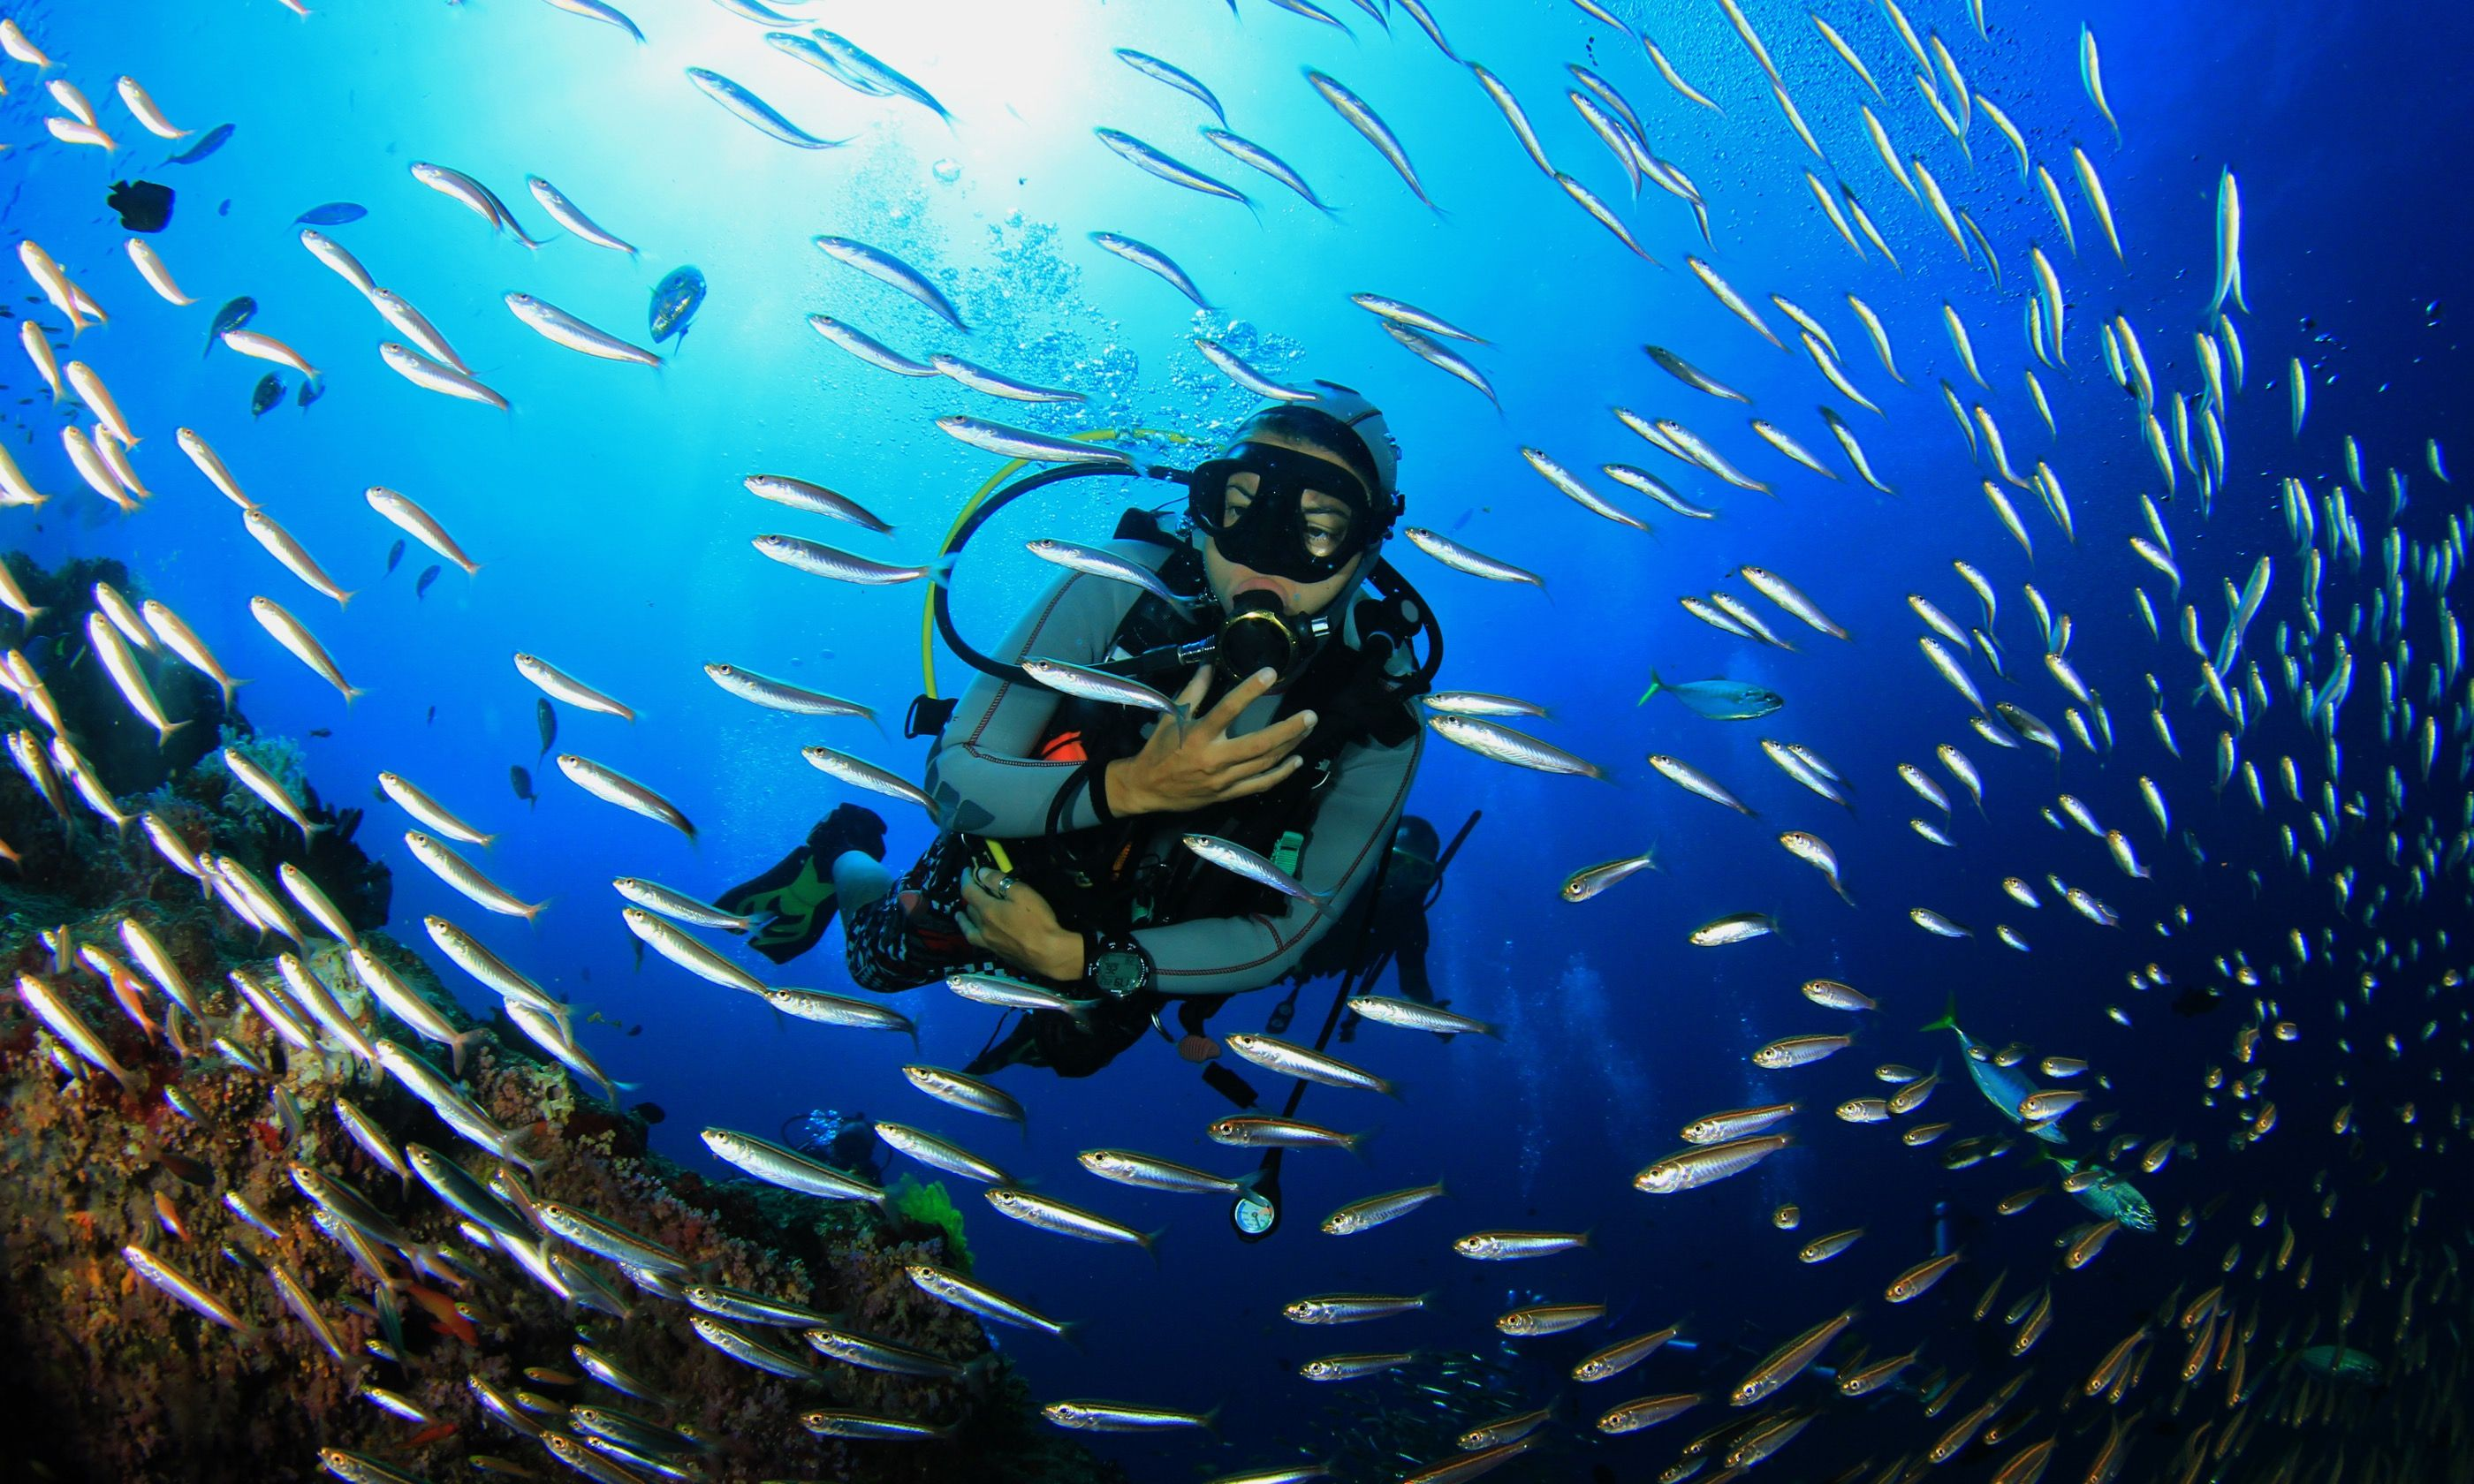 Scuba diving on coral reef (Shutterstock.com)